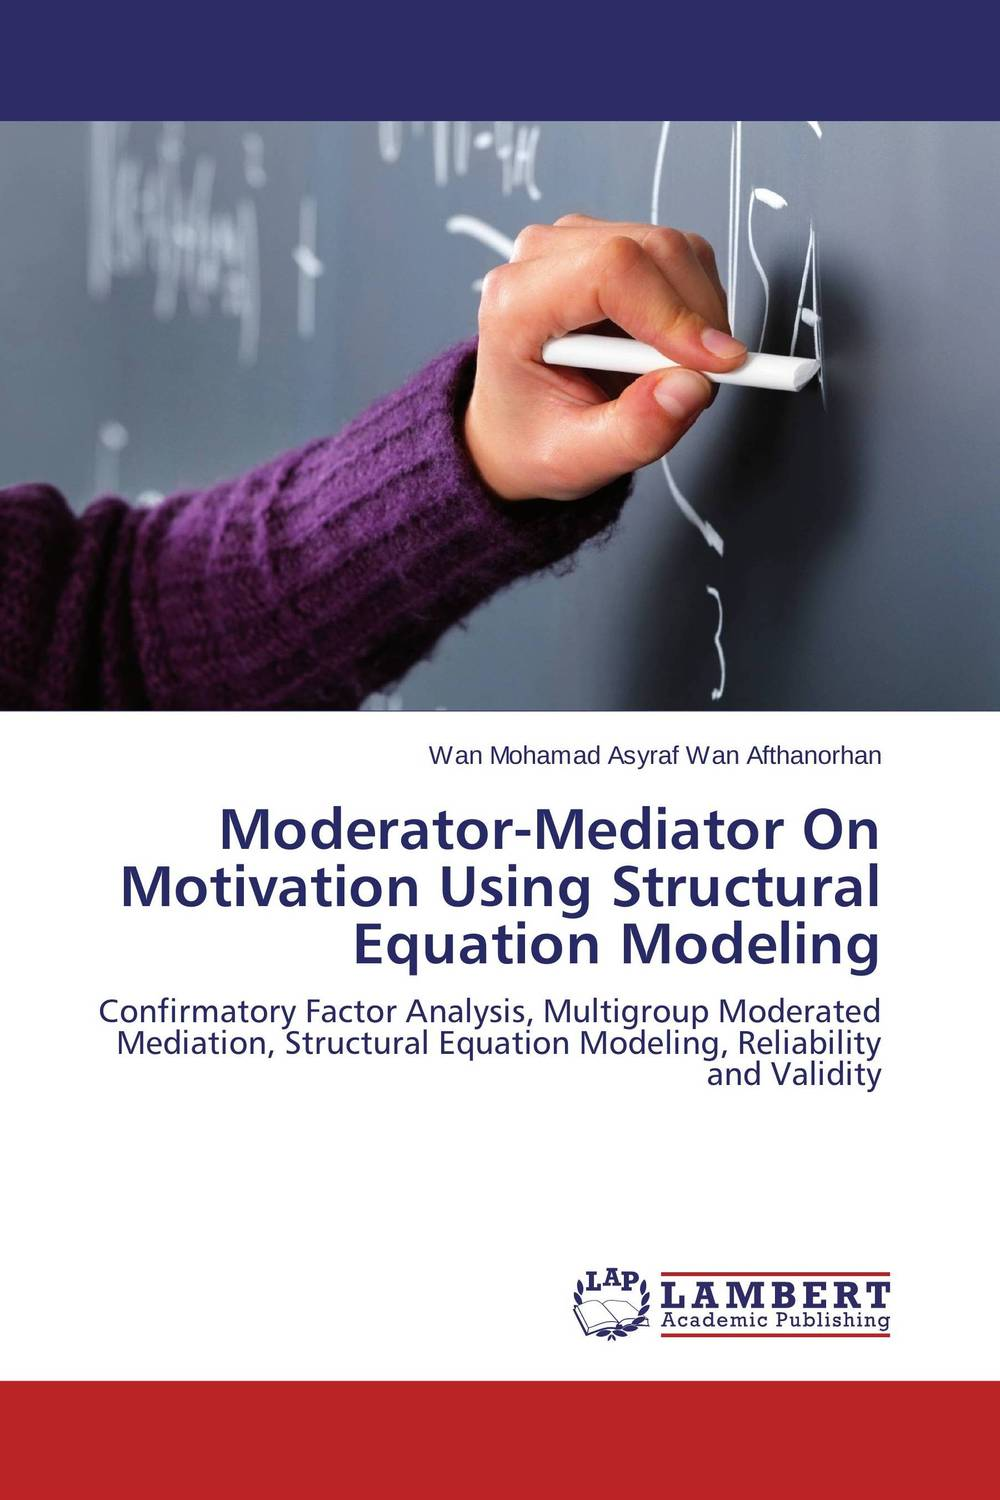 Moderator-Mediator On Motivation Using Structural Equation Modeling multiple imputation with structural equation modeling